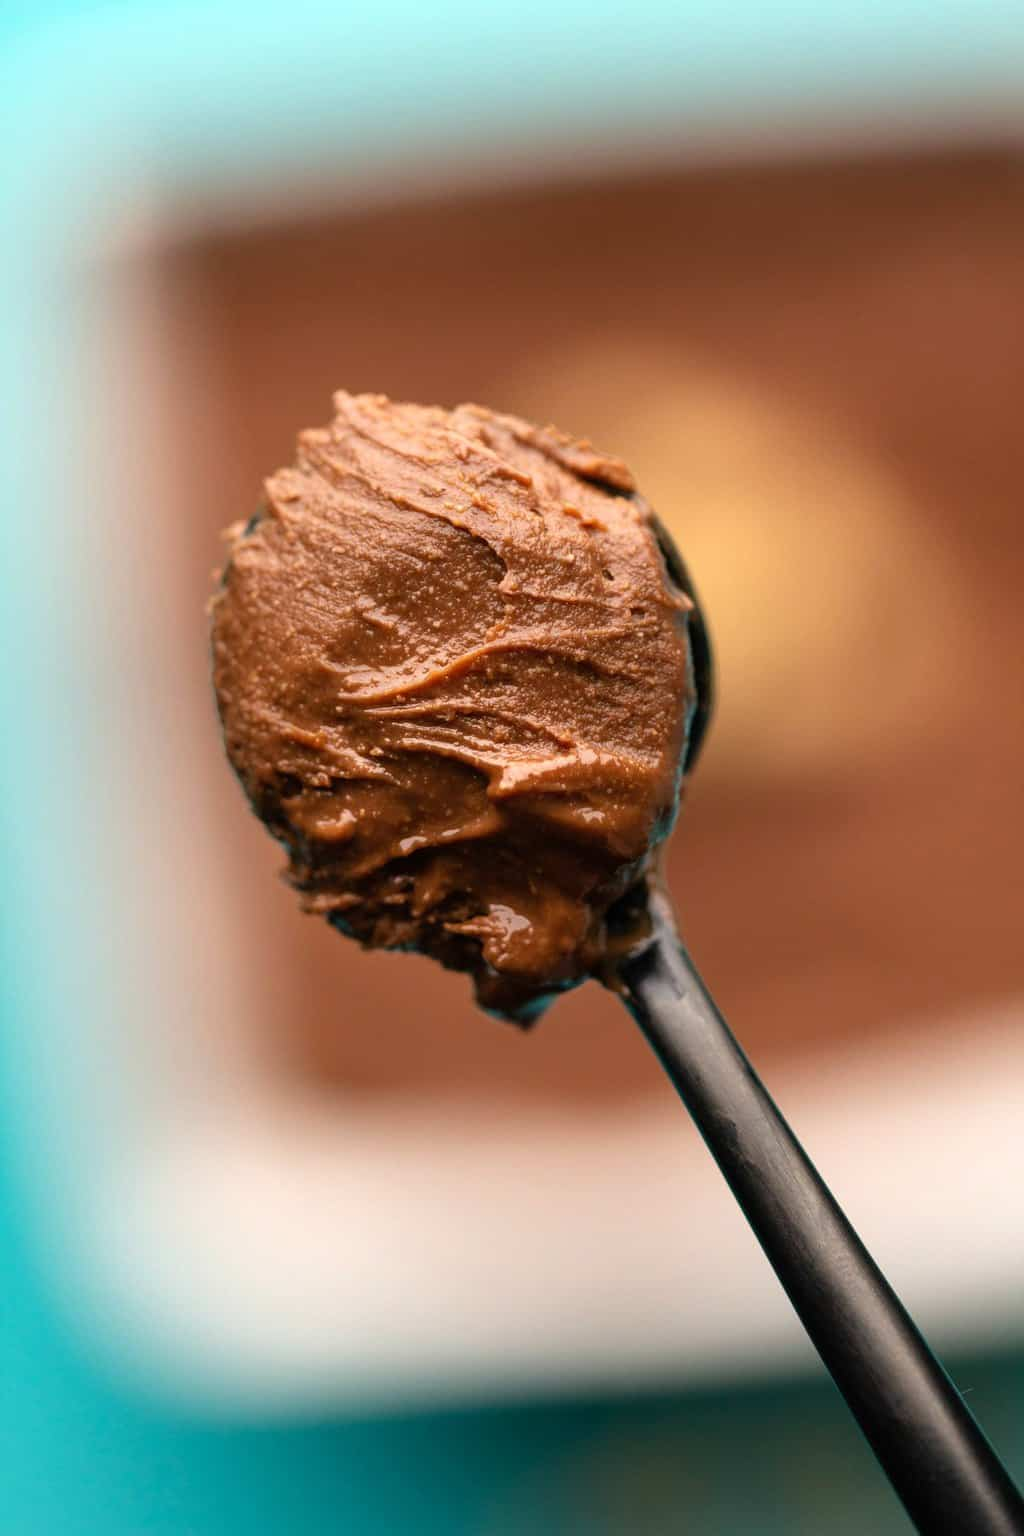 A spoonful of vegan nutella.